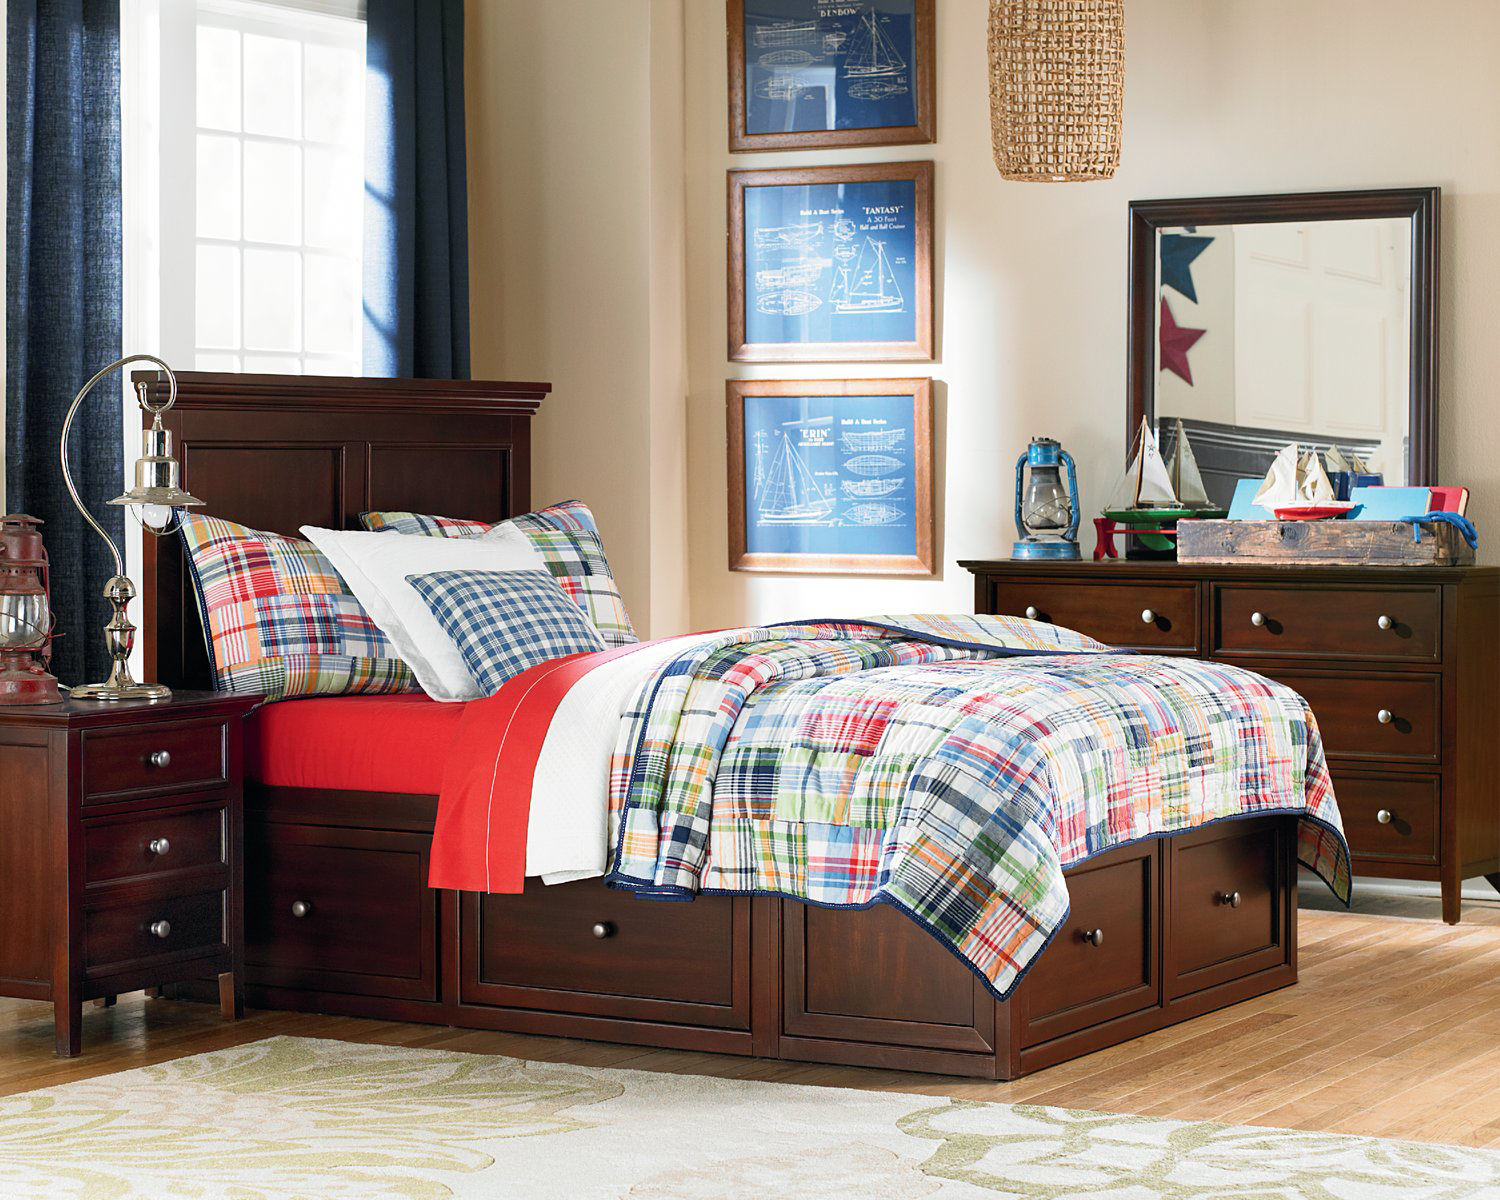 Spencer 6 Drawer Storage Bed By Thomas Cole Hom Furniture